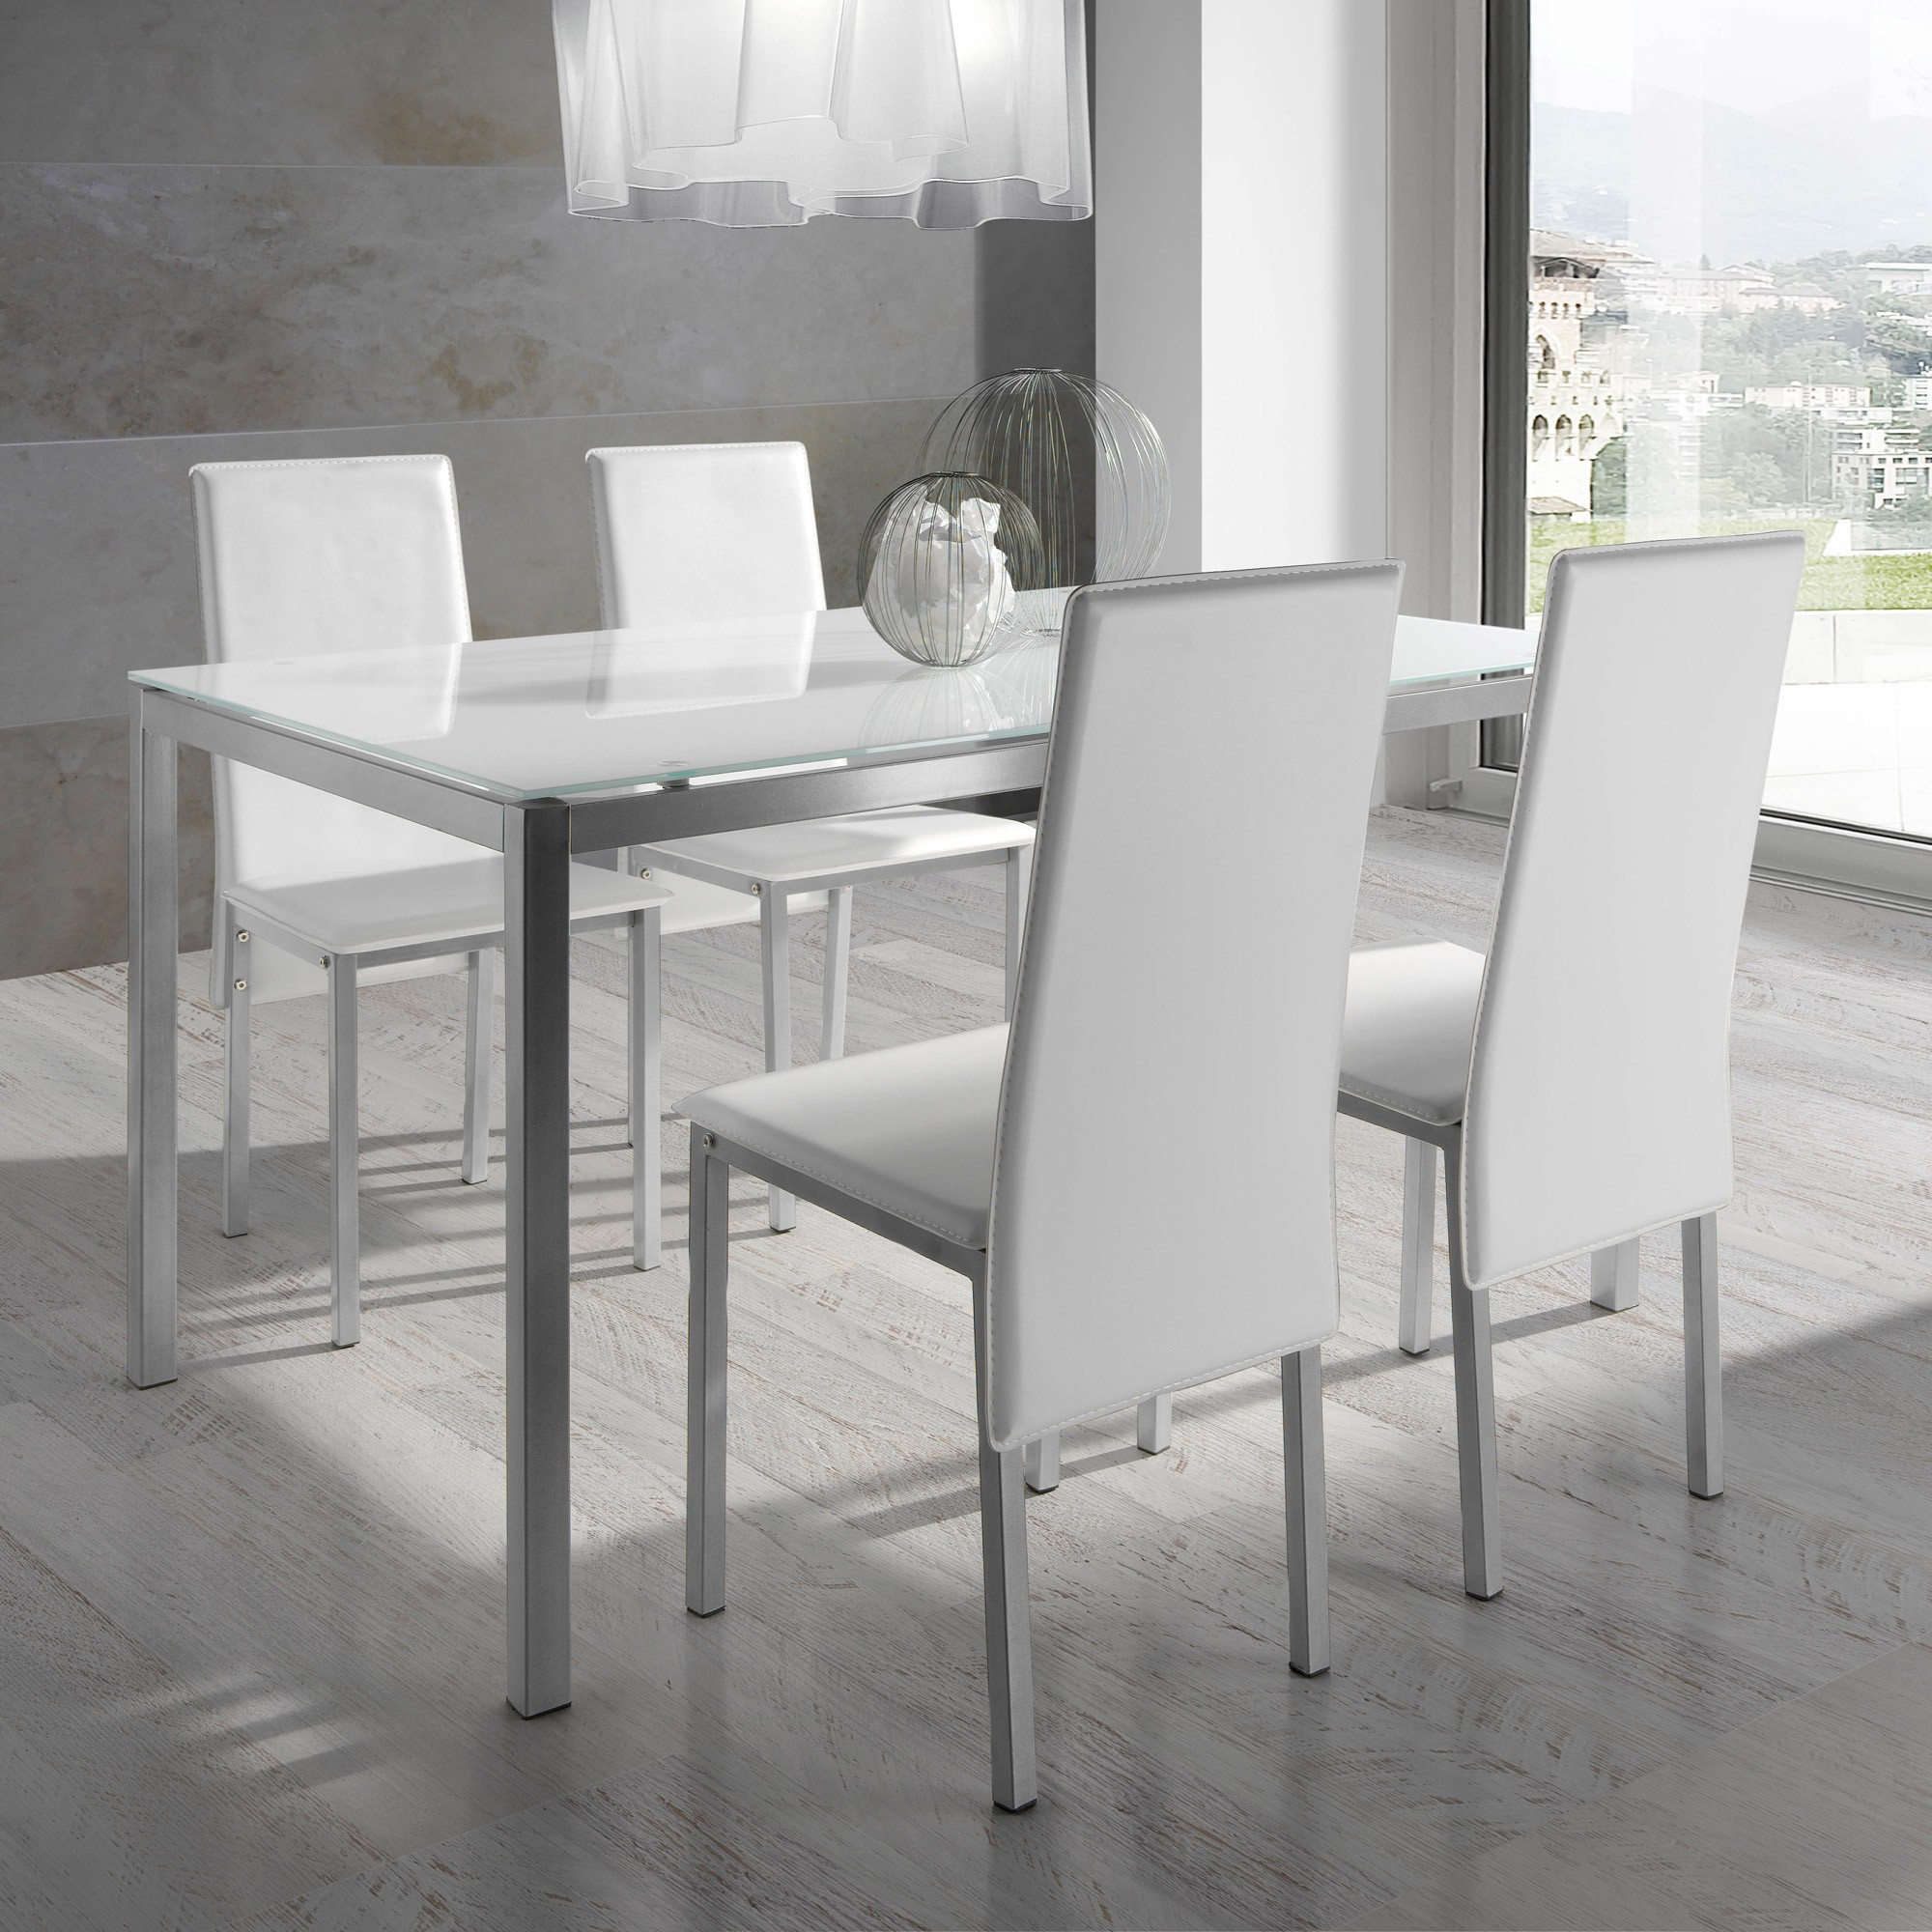 Ensemble table et chaise salle a manger but chaise - Table et chaise de salle a manger ...